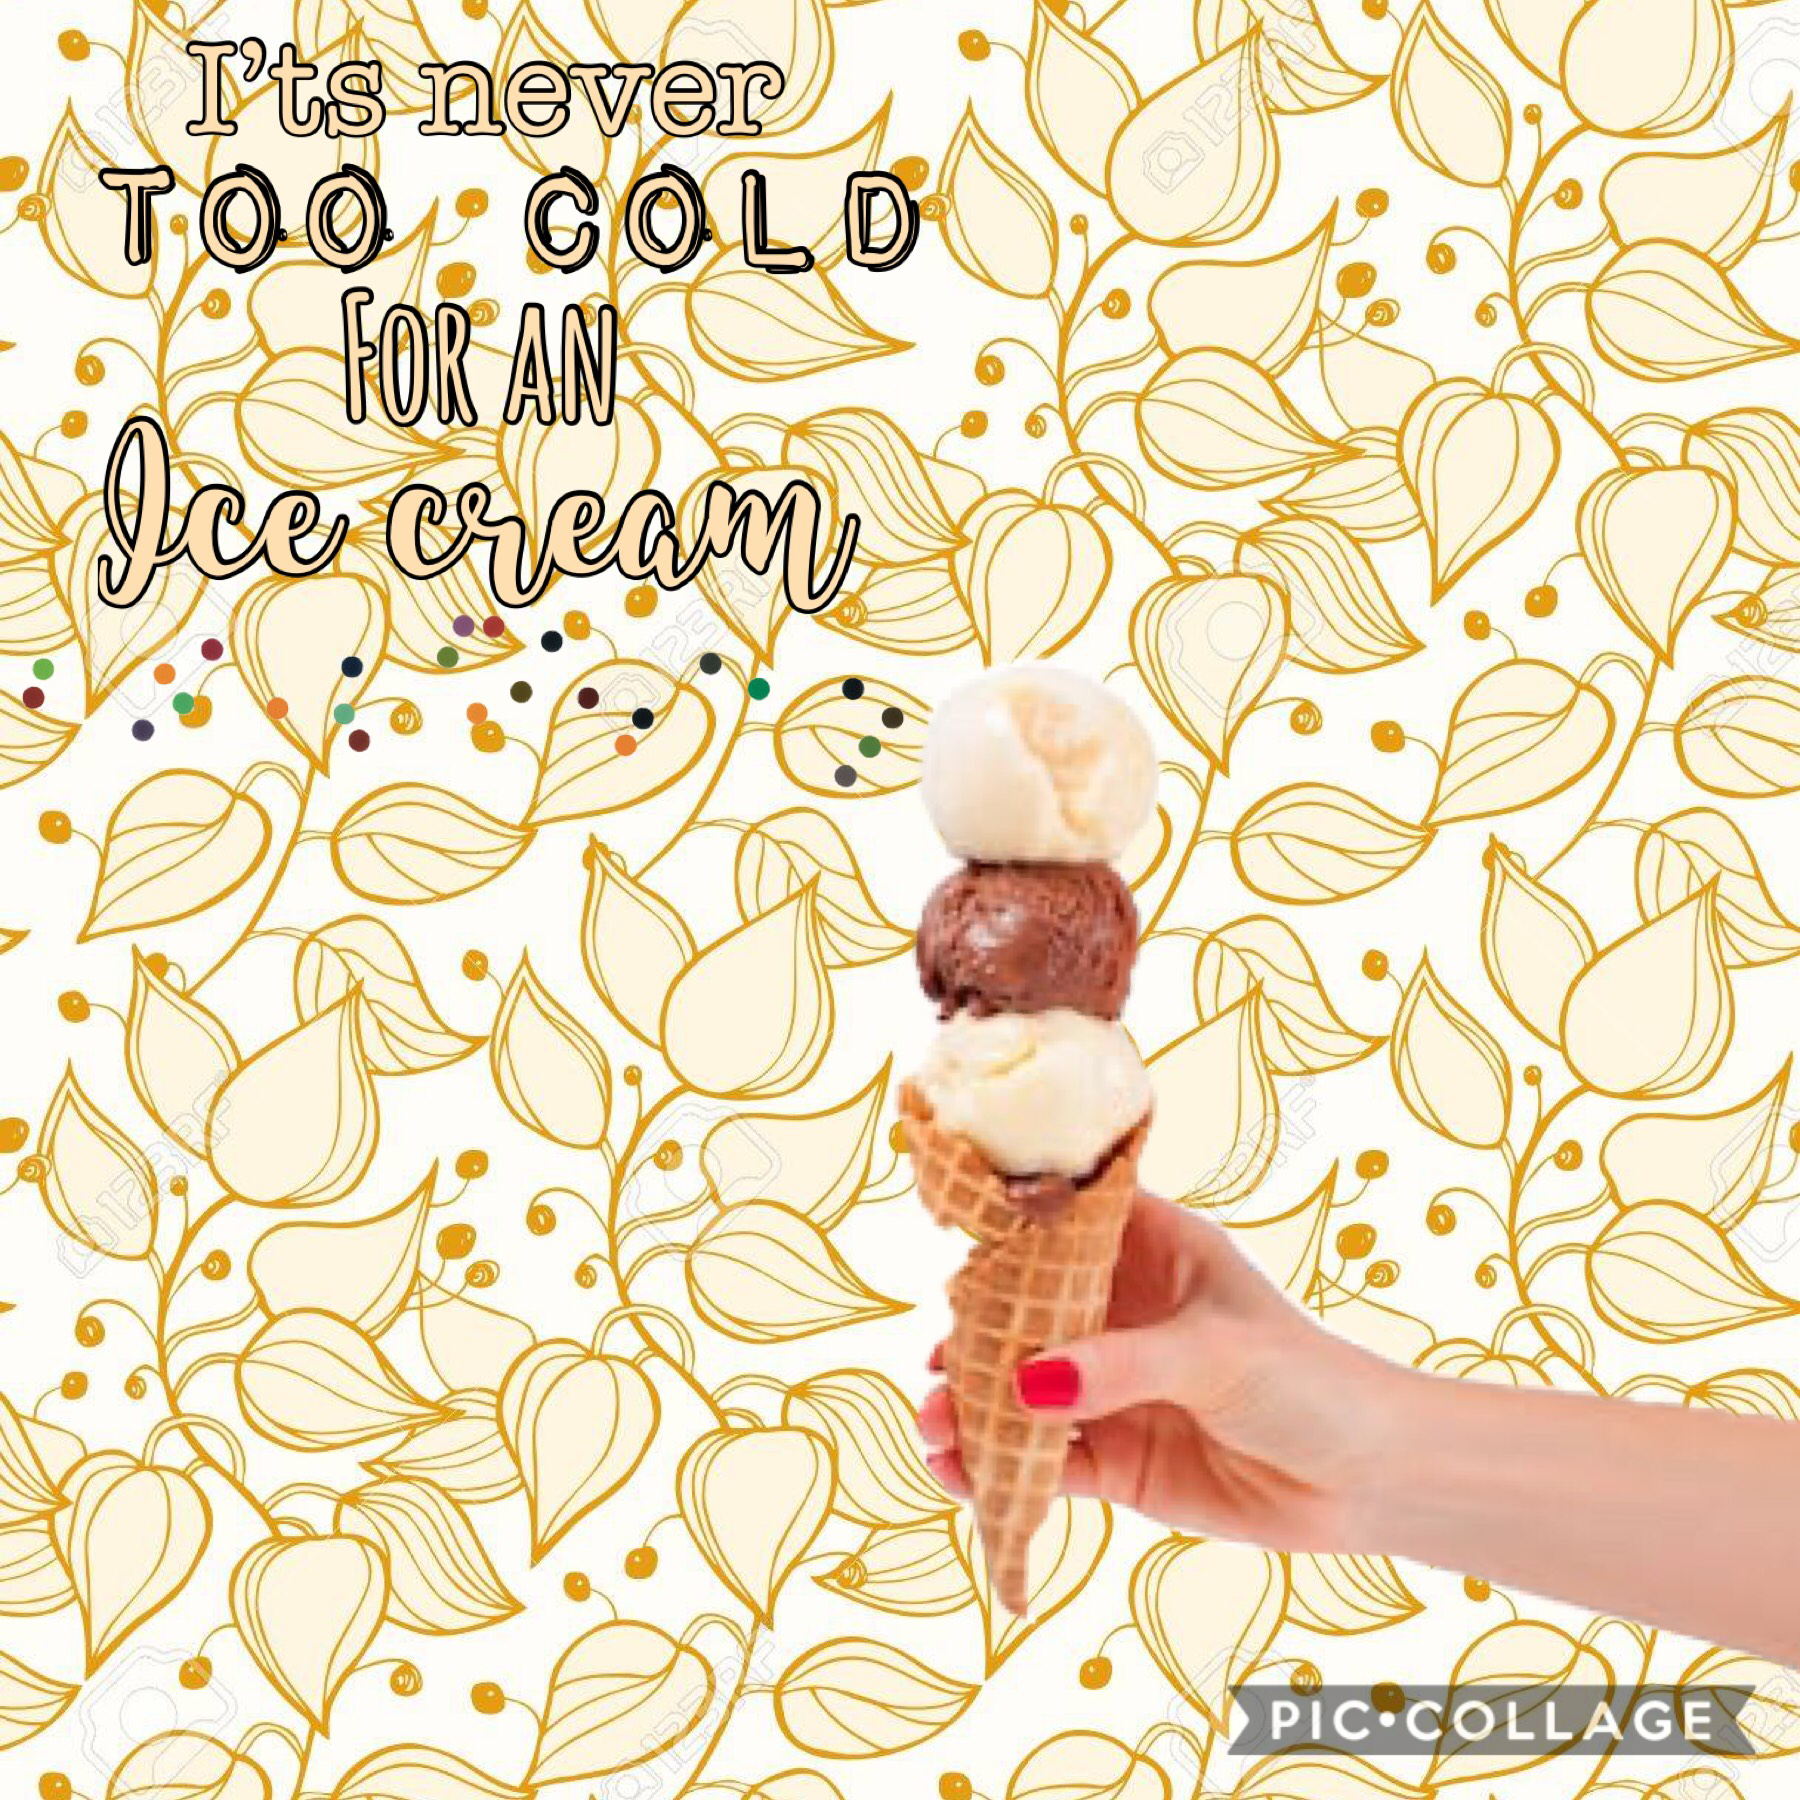 #itsnevertoocoldforanicecream